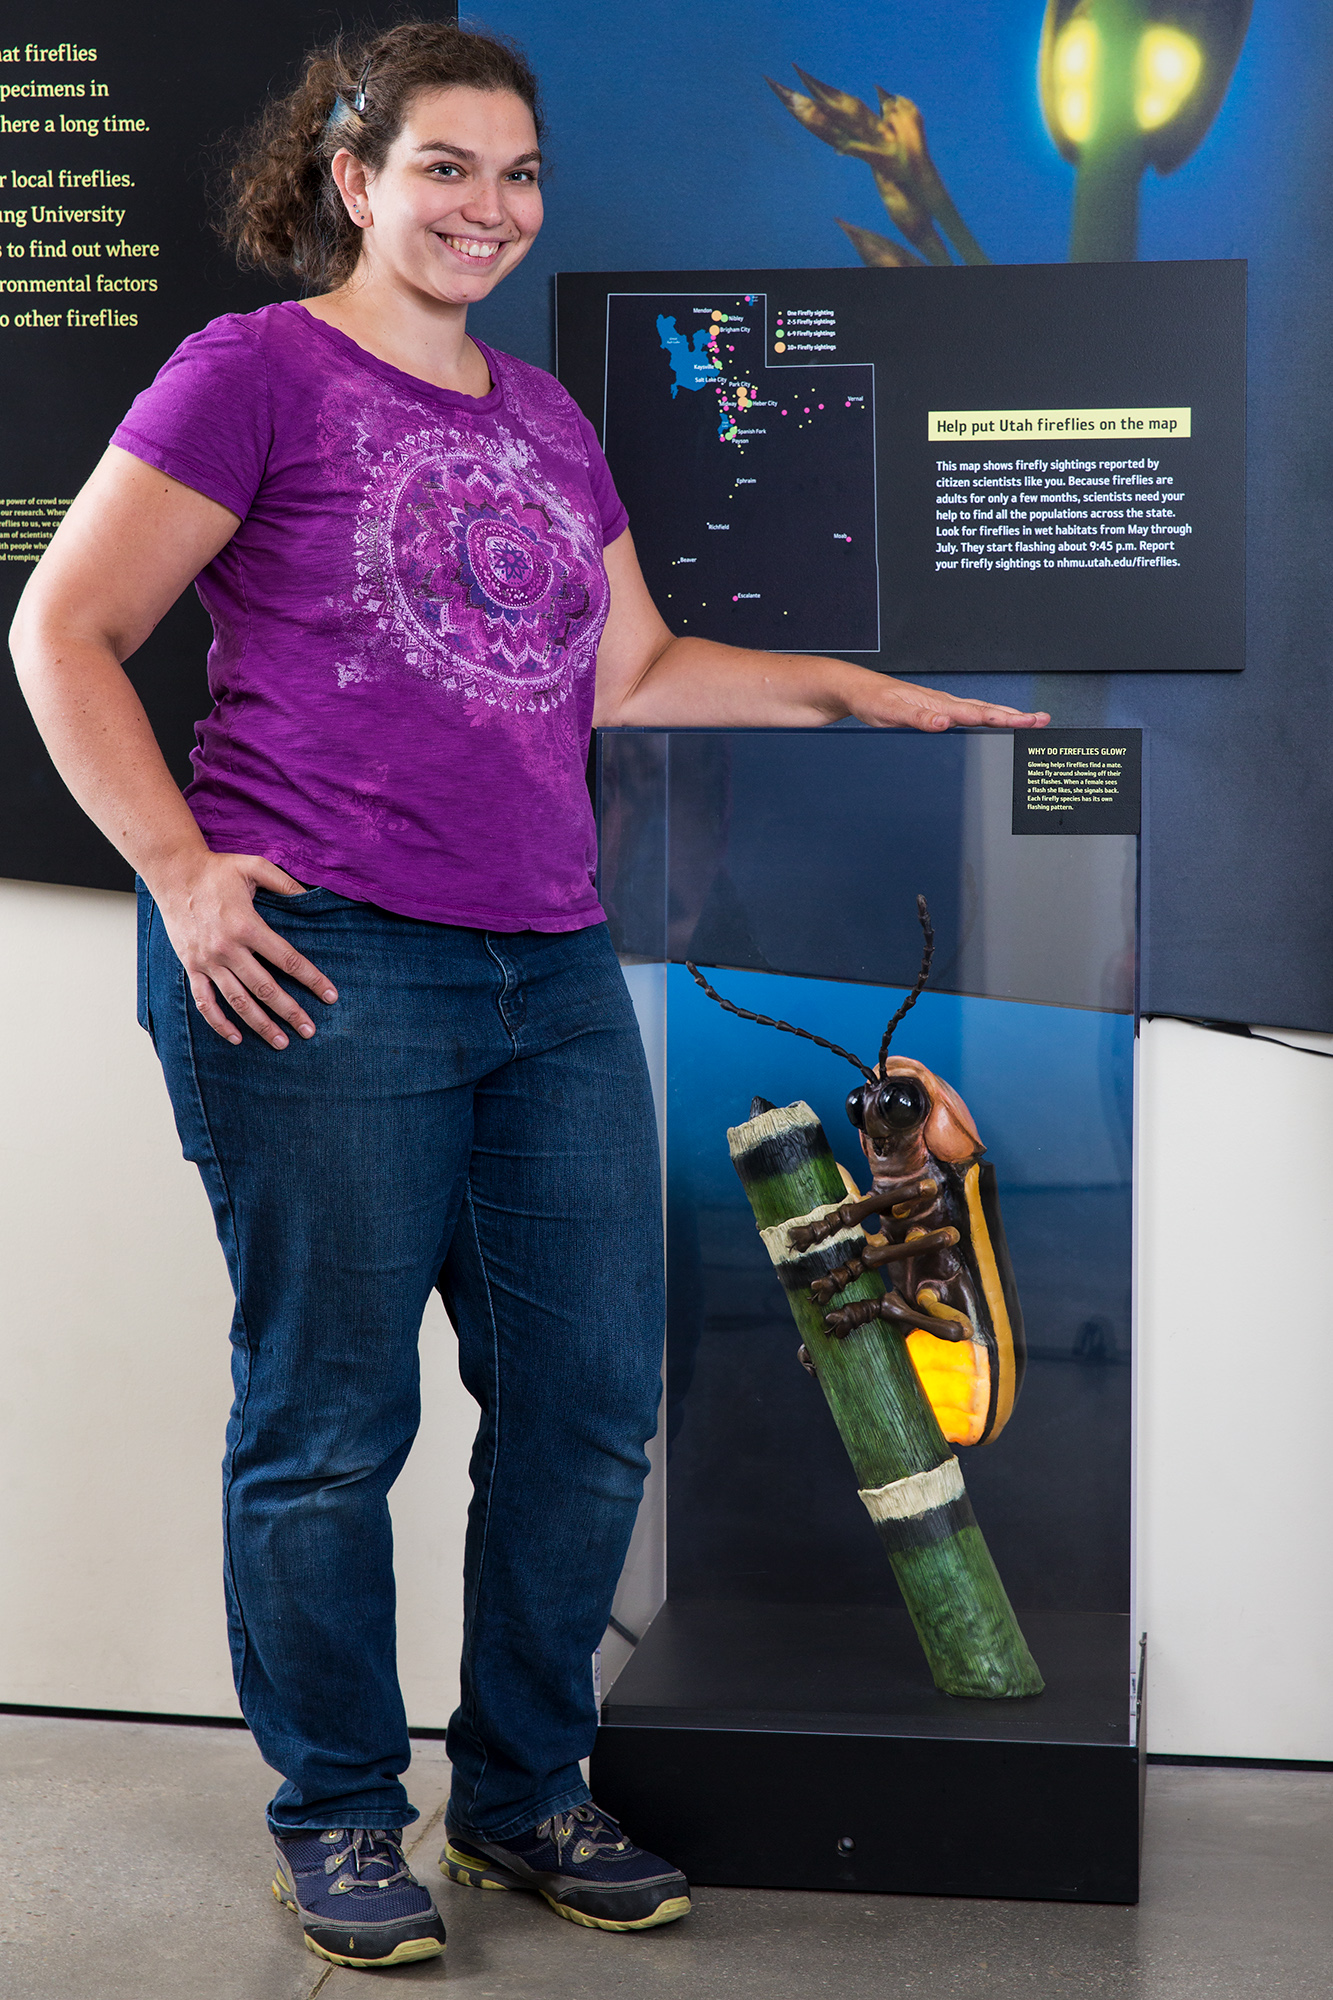 Preparator Emily Szalay stands next to a firefly model she built at NHMU.